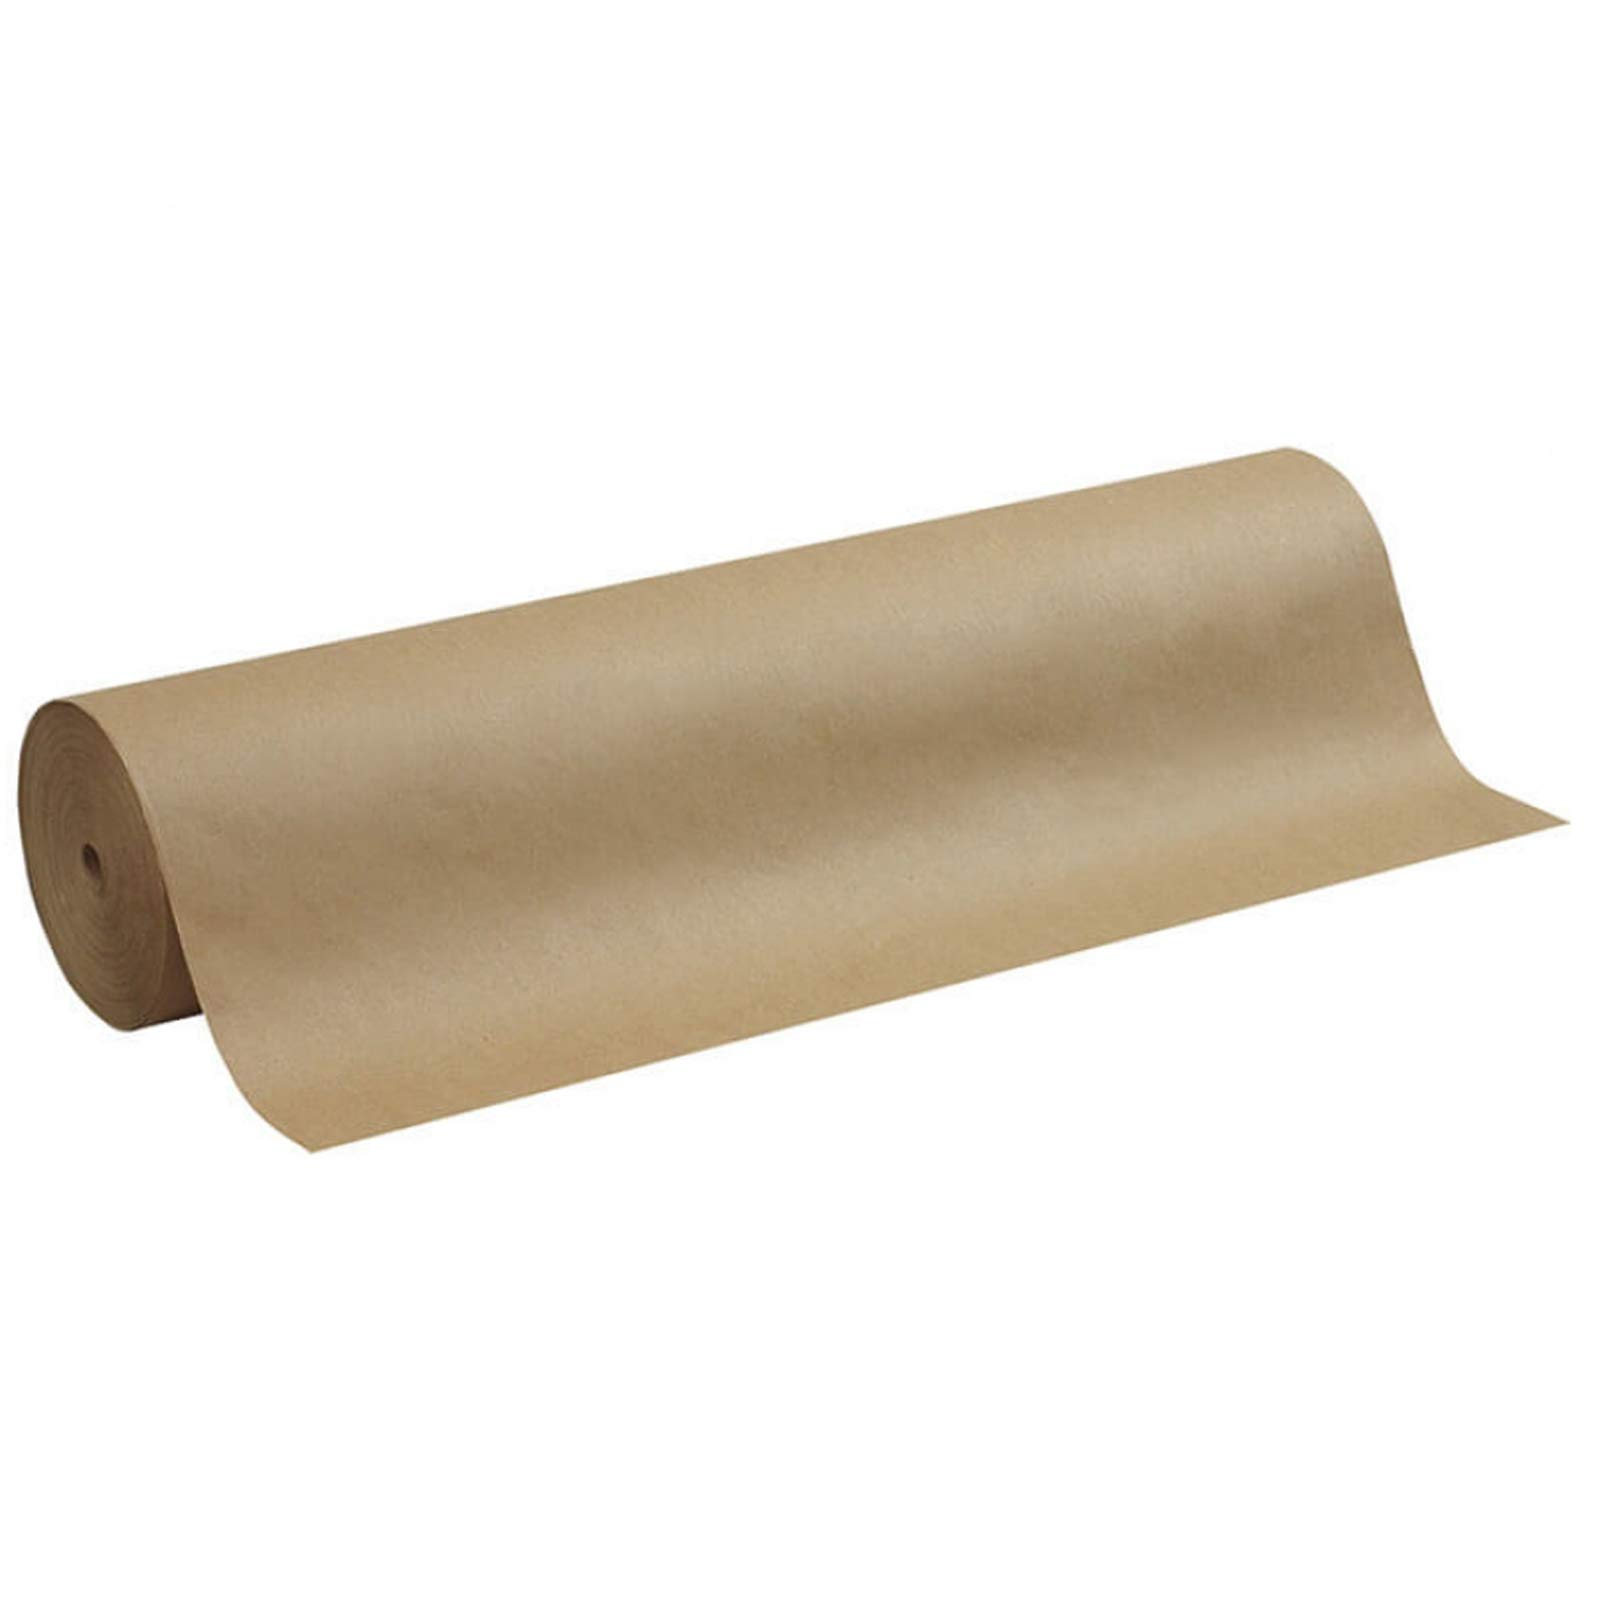 Pacon PAC5736 Lightweight Kraft Roll, Natural, 36'' x 1000', 1 Roll by PACON